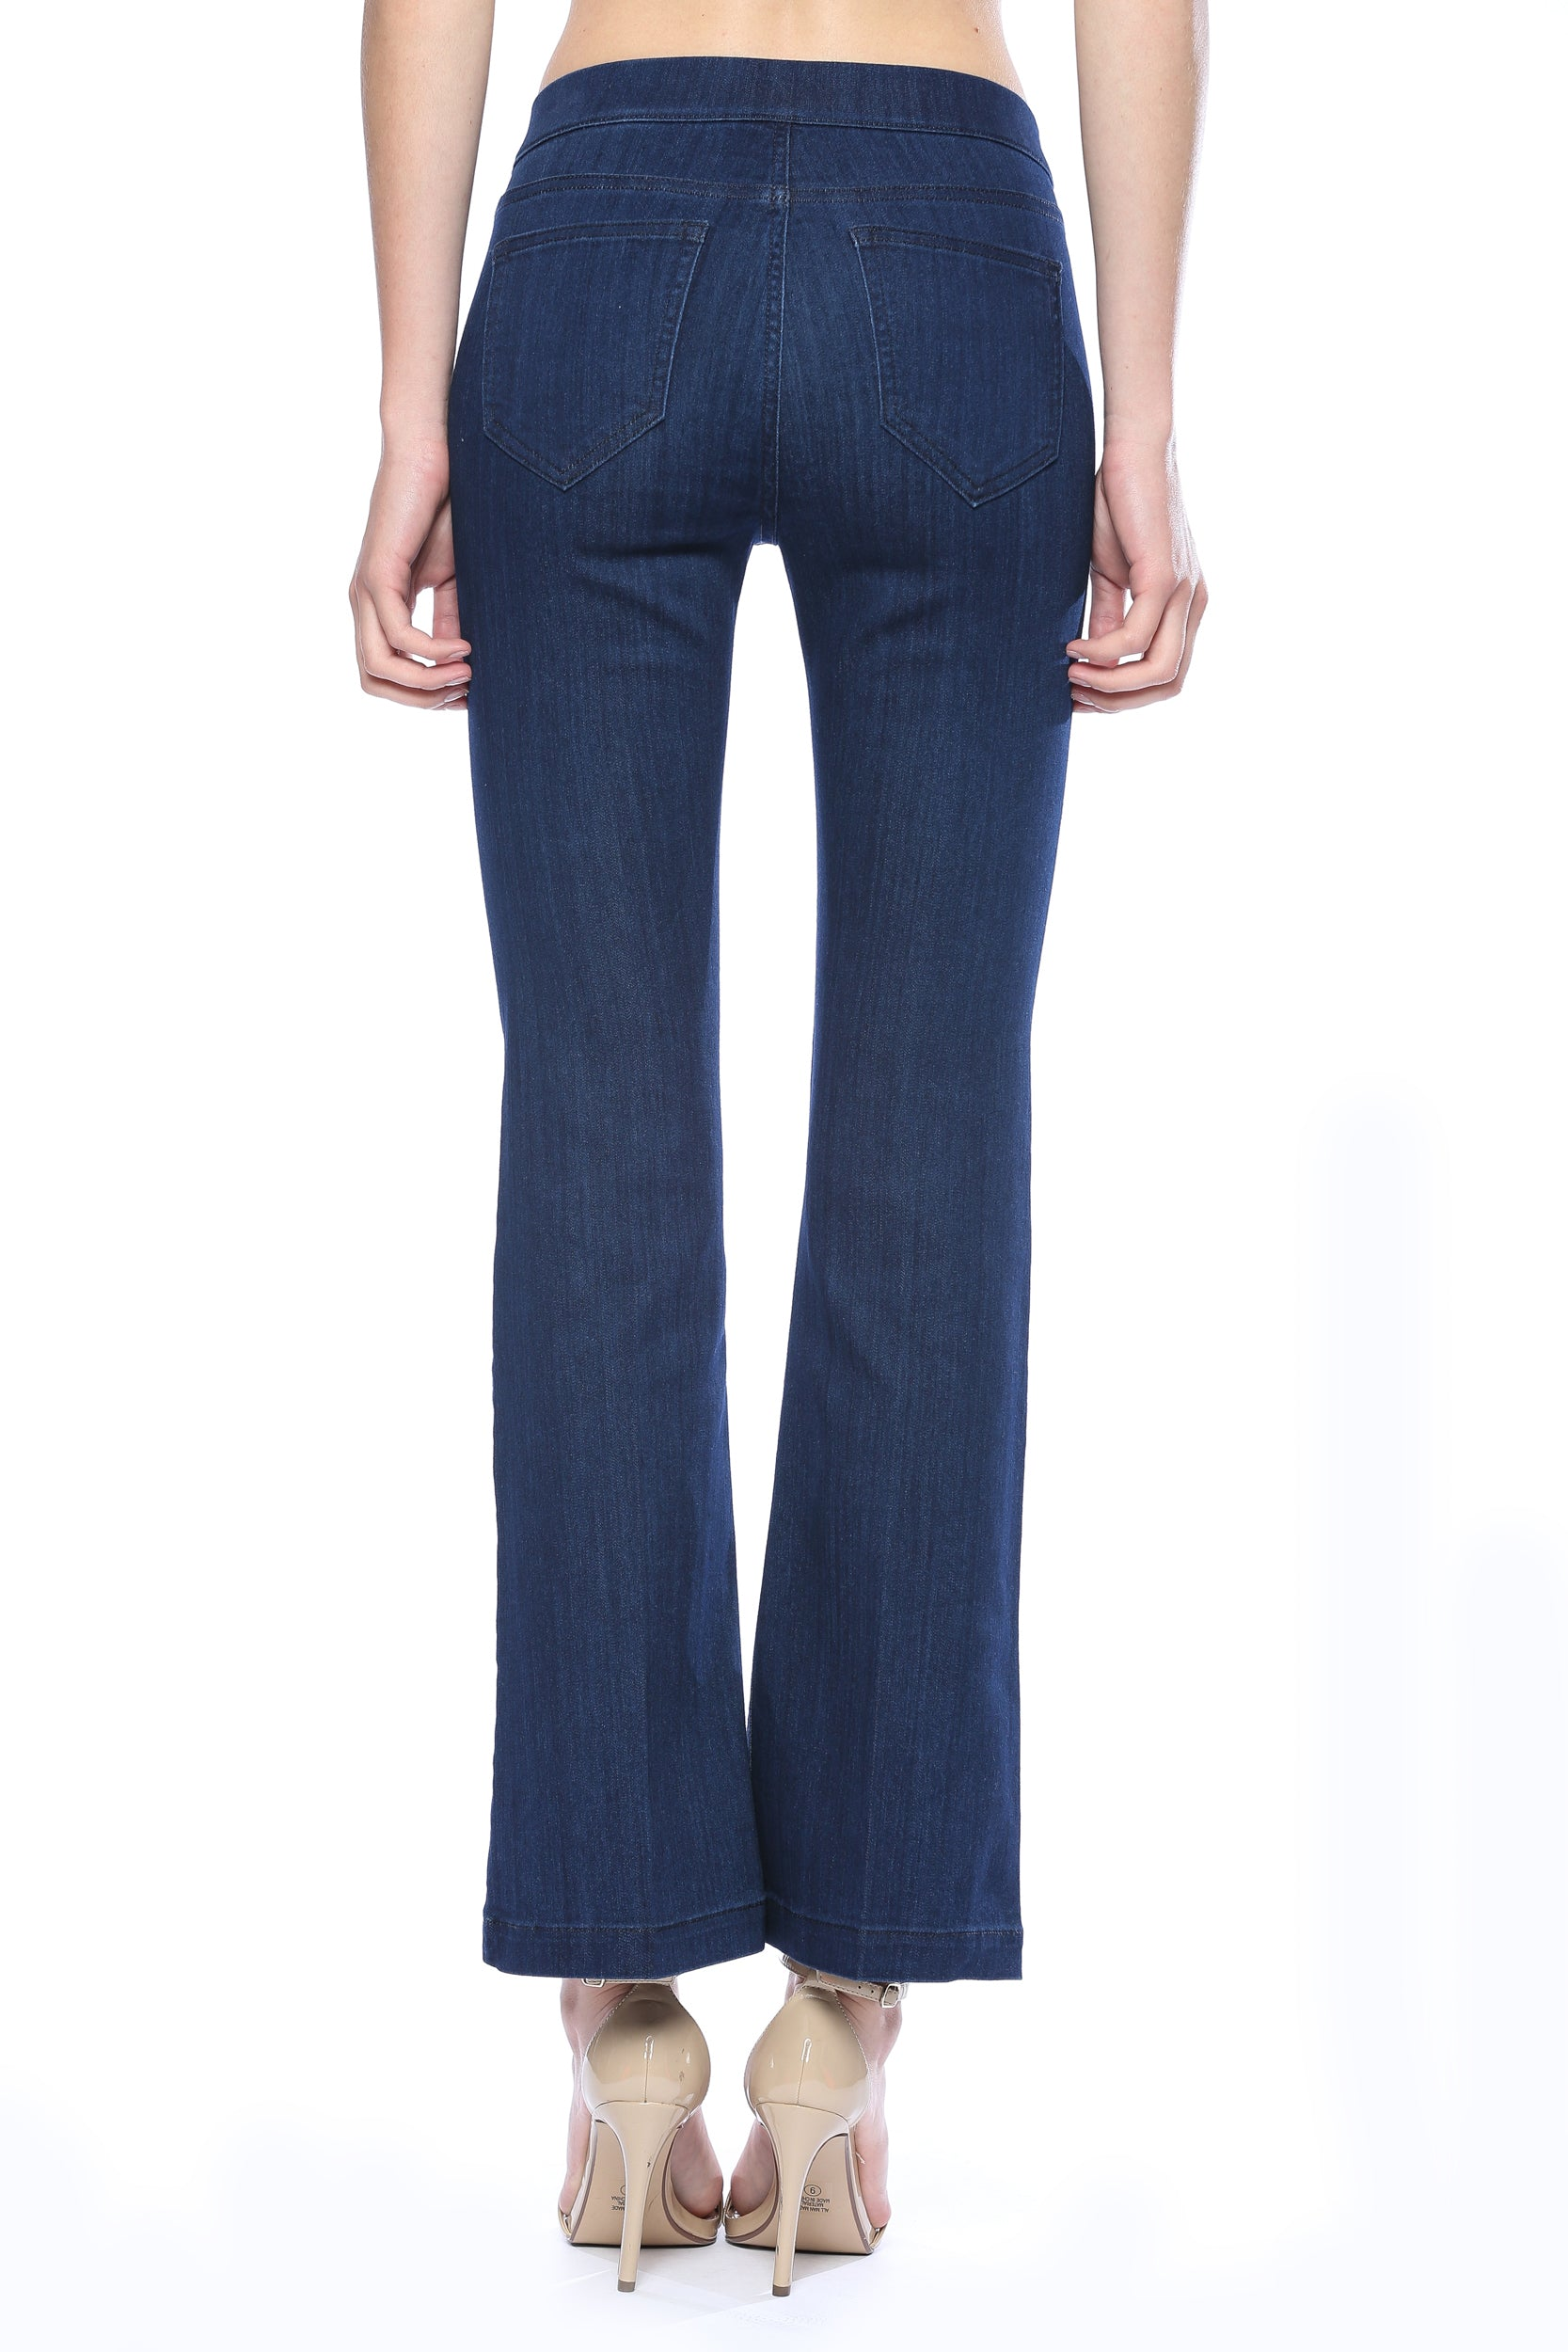 Kennedy flares, petite